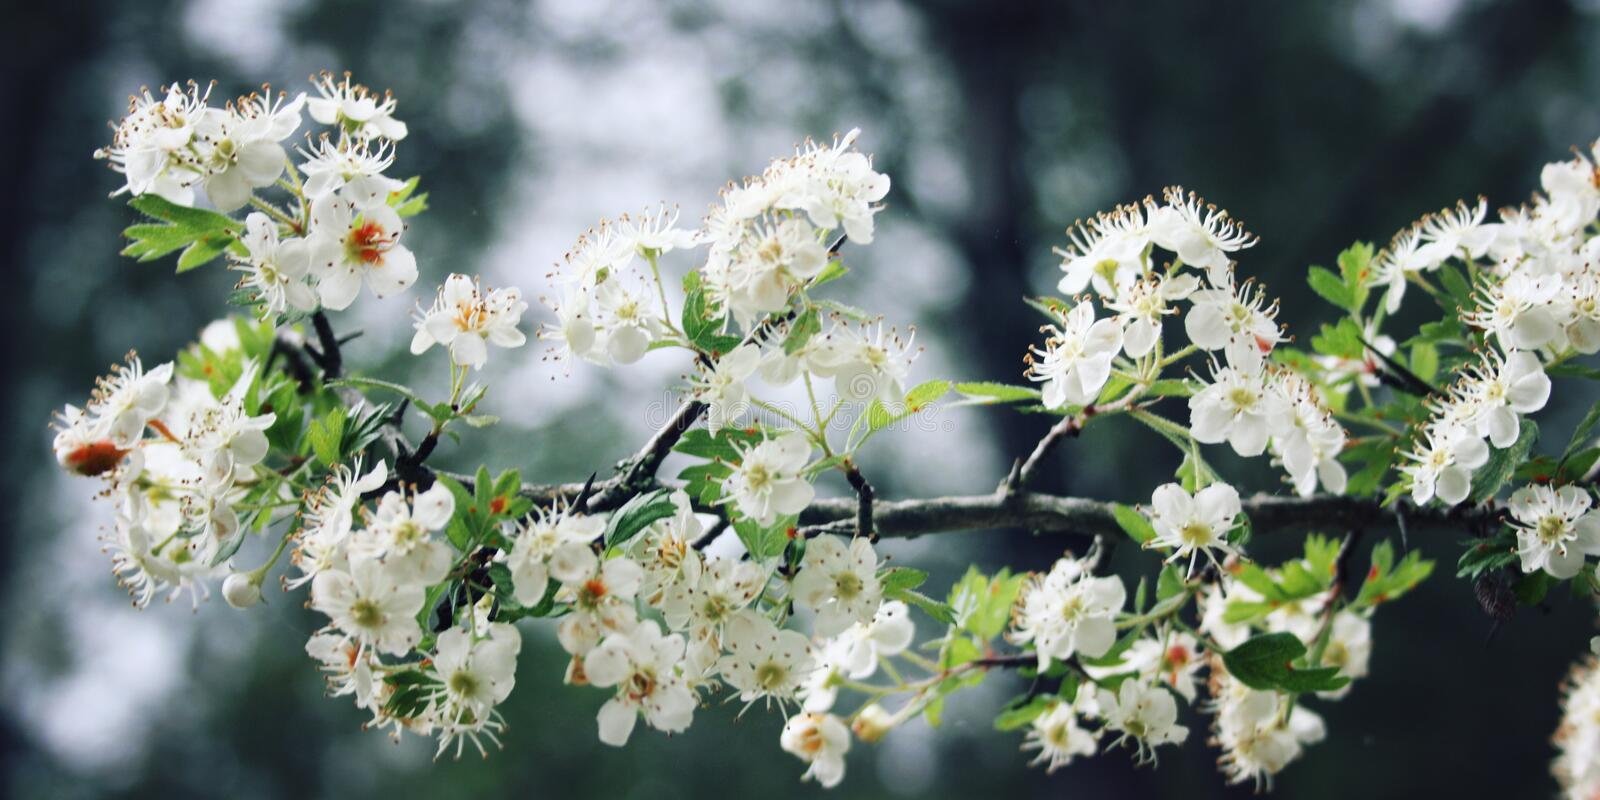 Hawthorn tree shrub. White flowers of Hawthorn. Aged photo. White flowers of Hawthorn. Aged photo. Blossom during springtime. Vintage effect. Blackthorn flowers royalty free stock photo